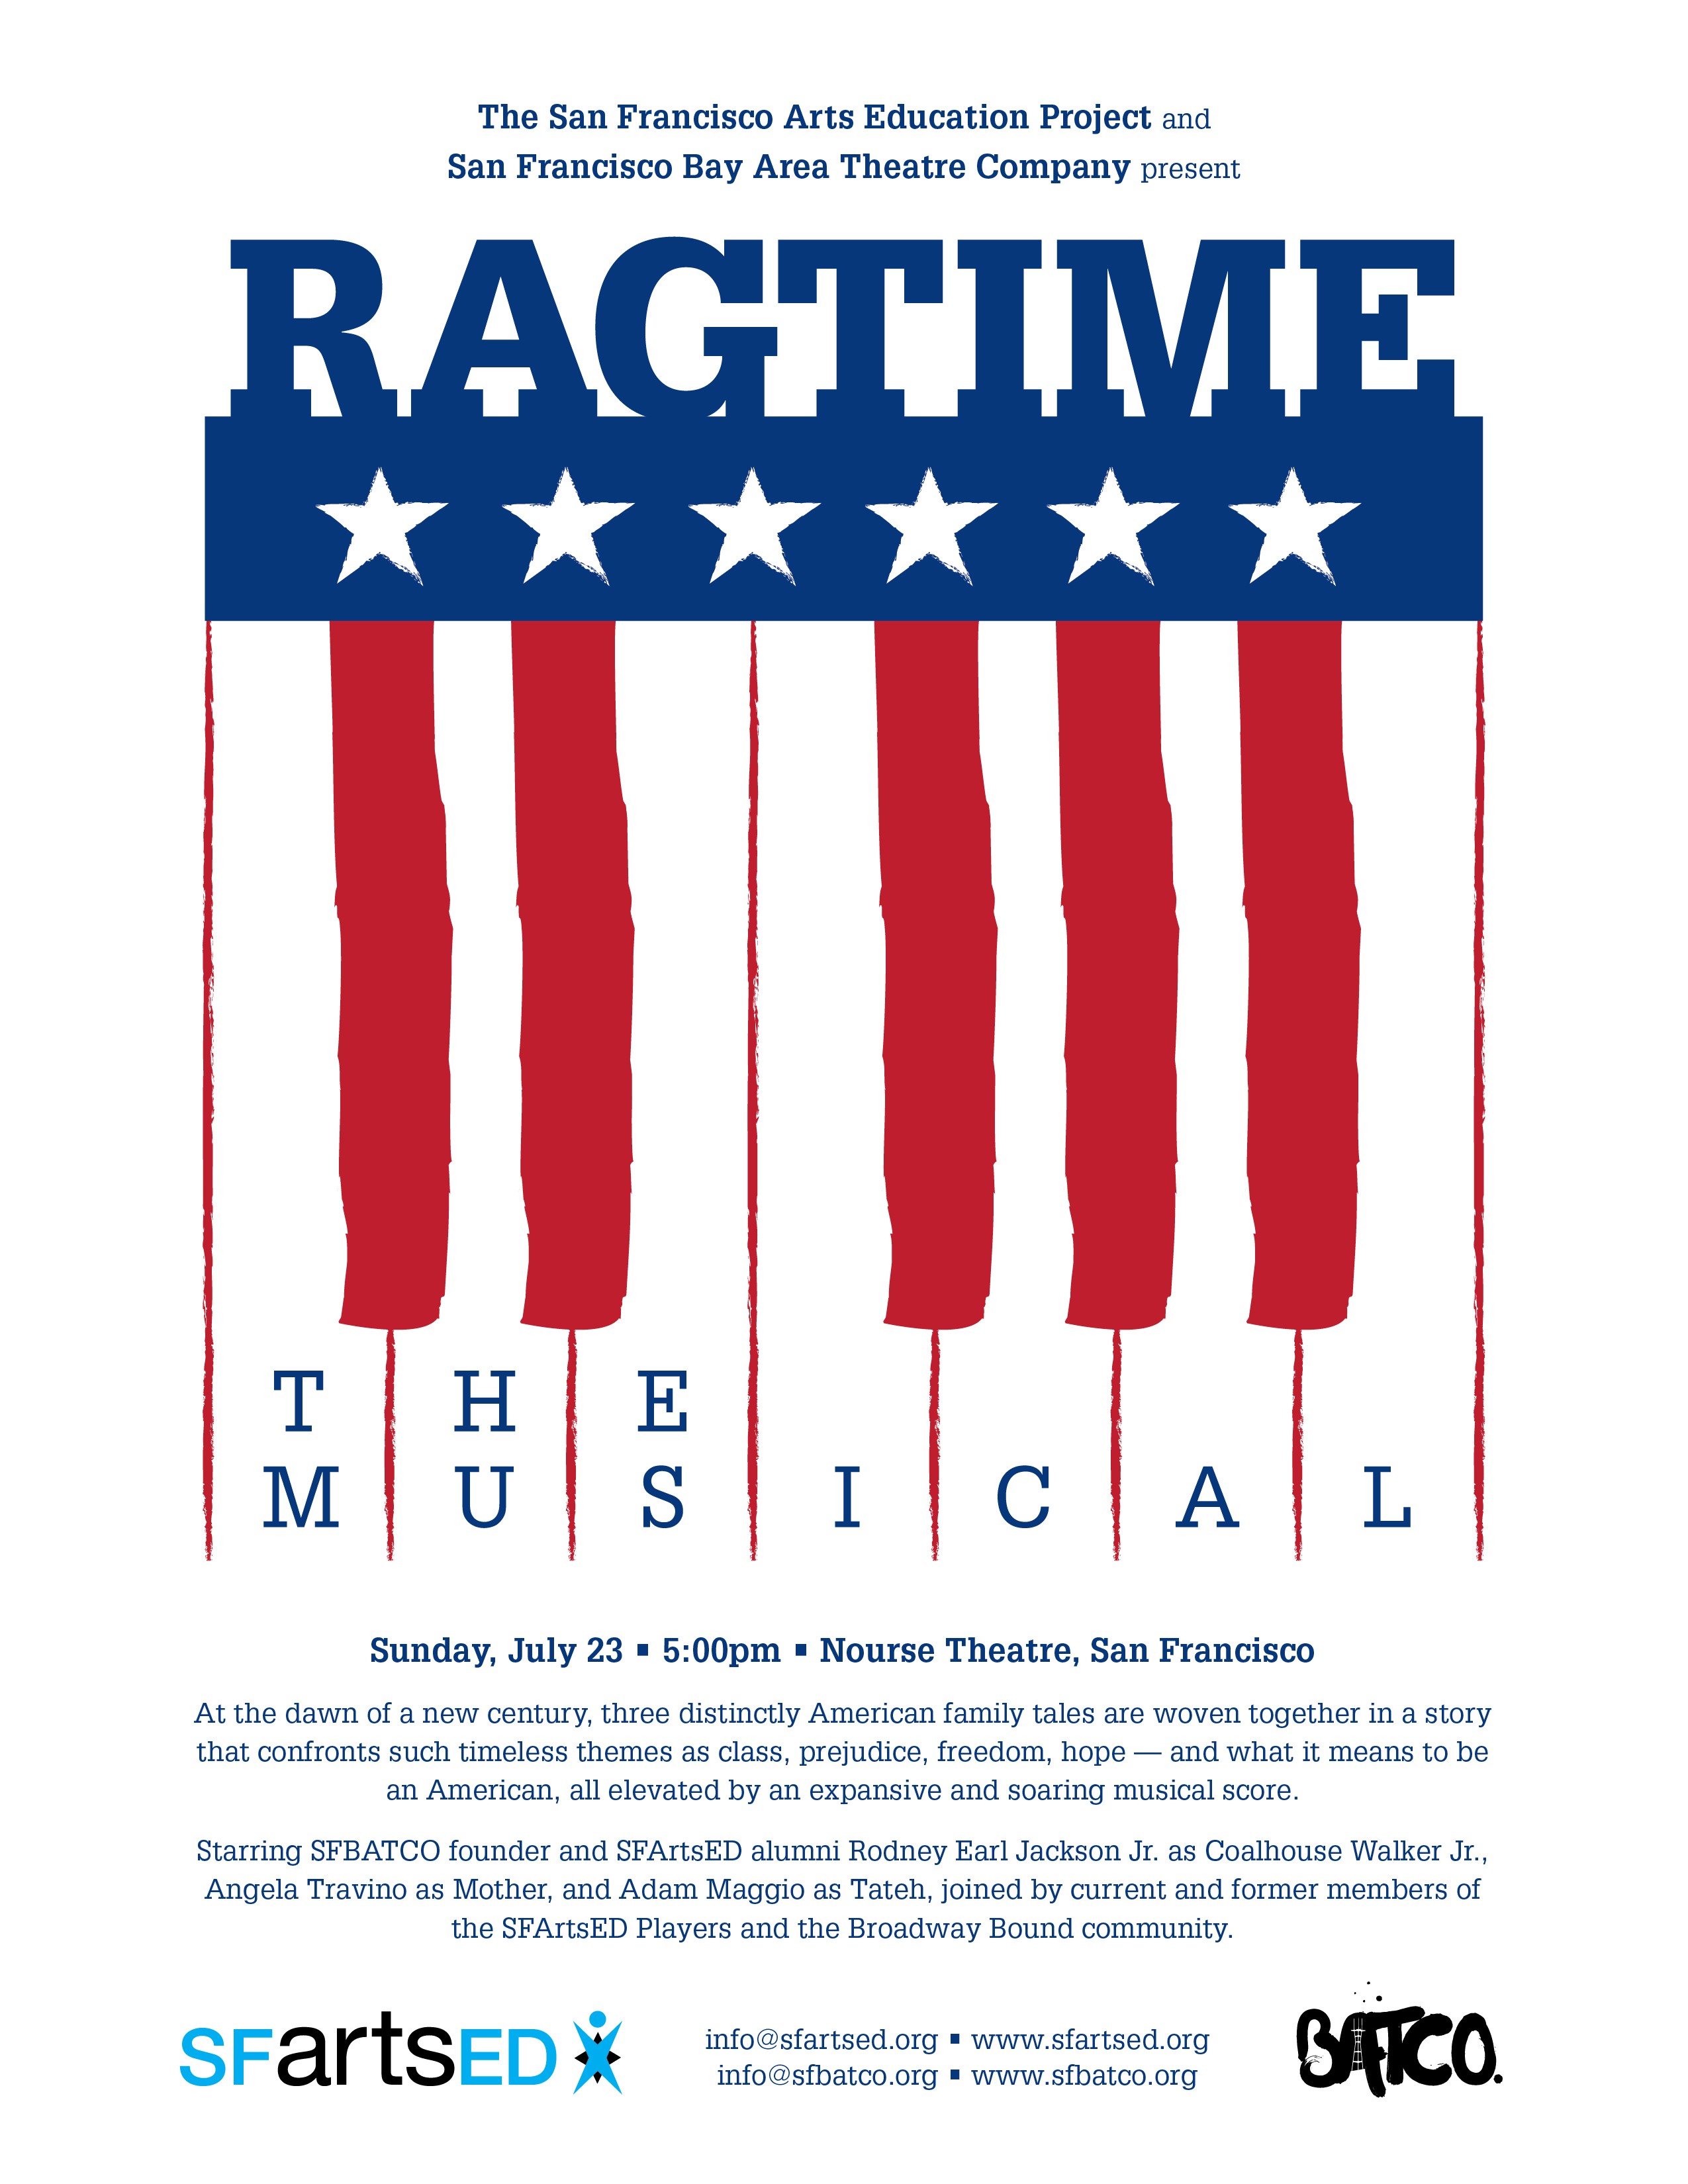 One night only: Ragtime